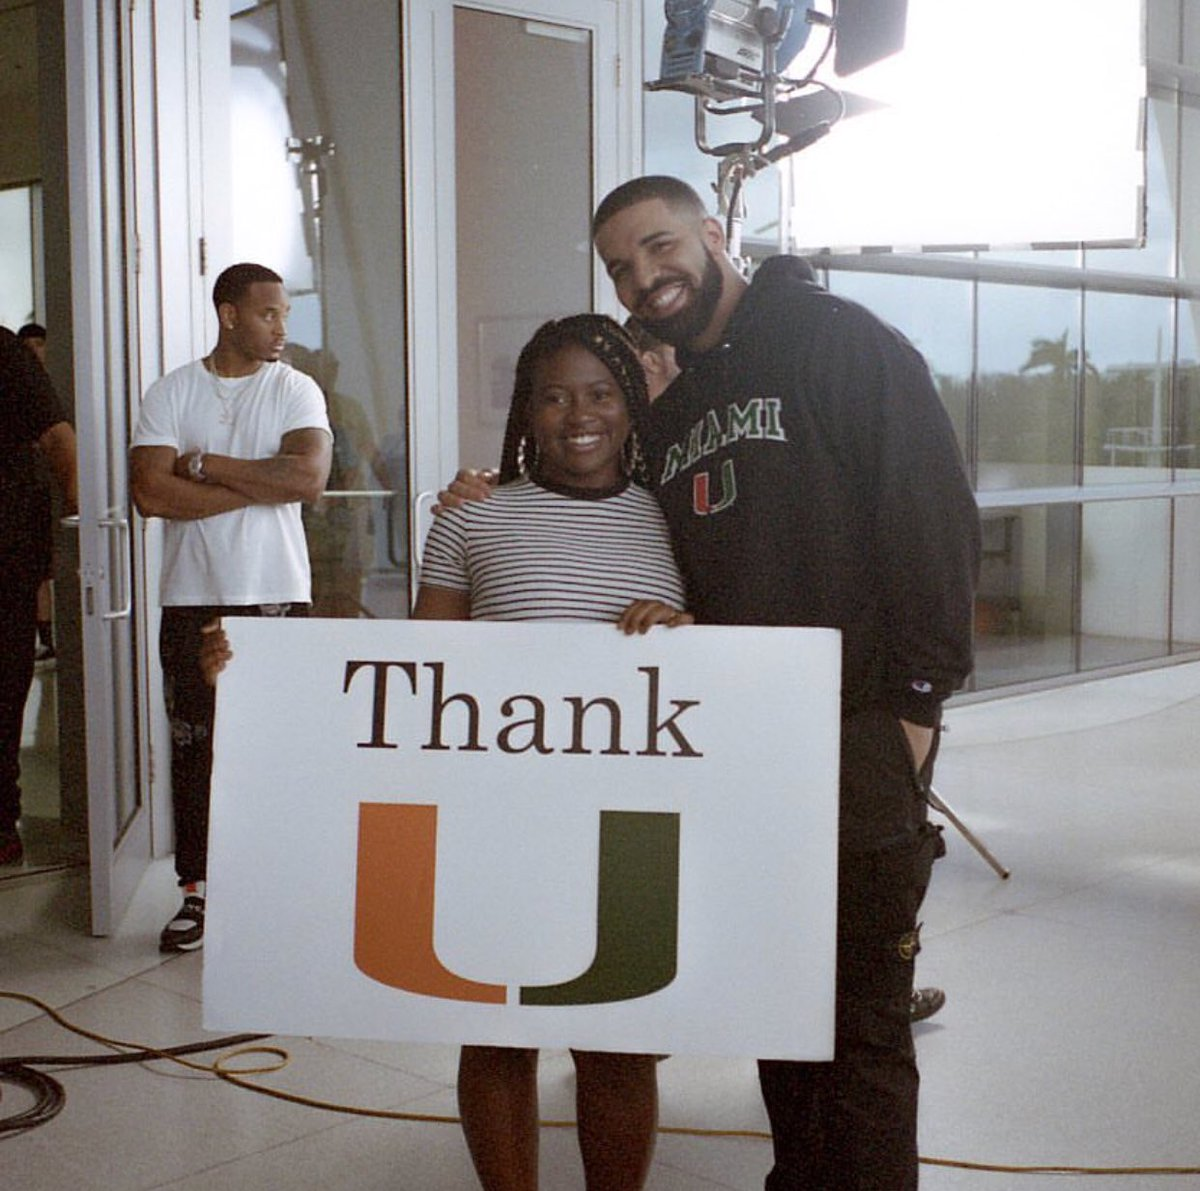 Thank you to The U for the assistance in...